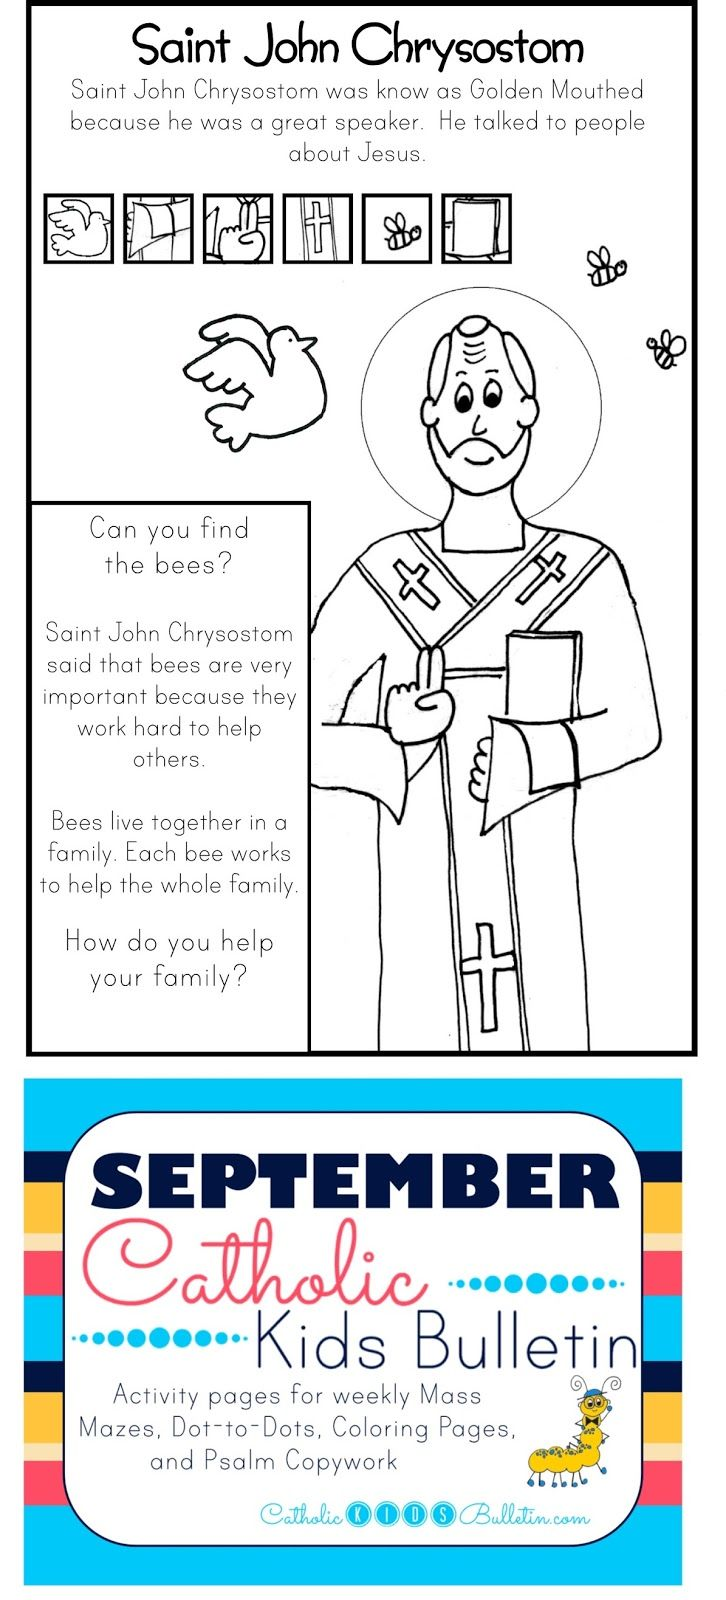 Saint John Chrysostom Coloring Page Catholic Kids Bulletin | 2nd ...